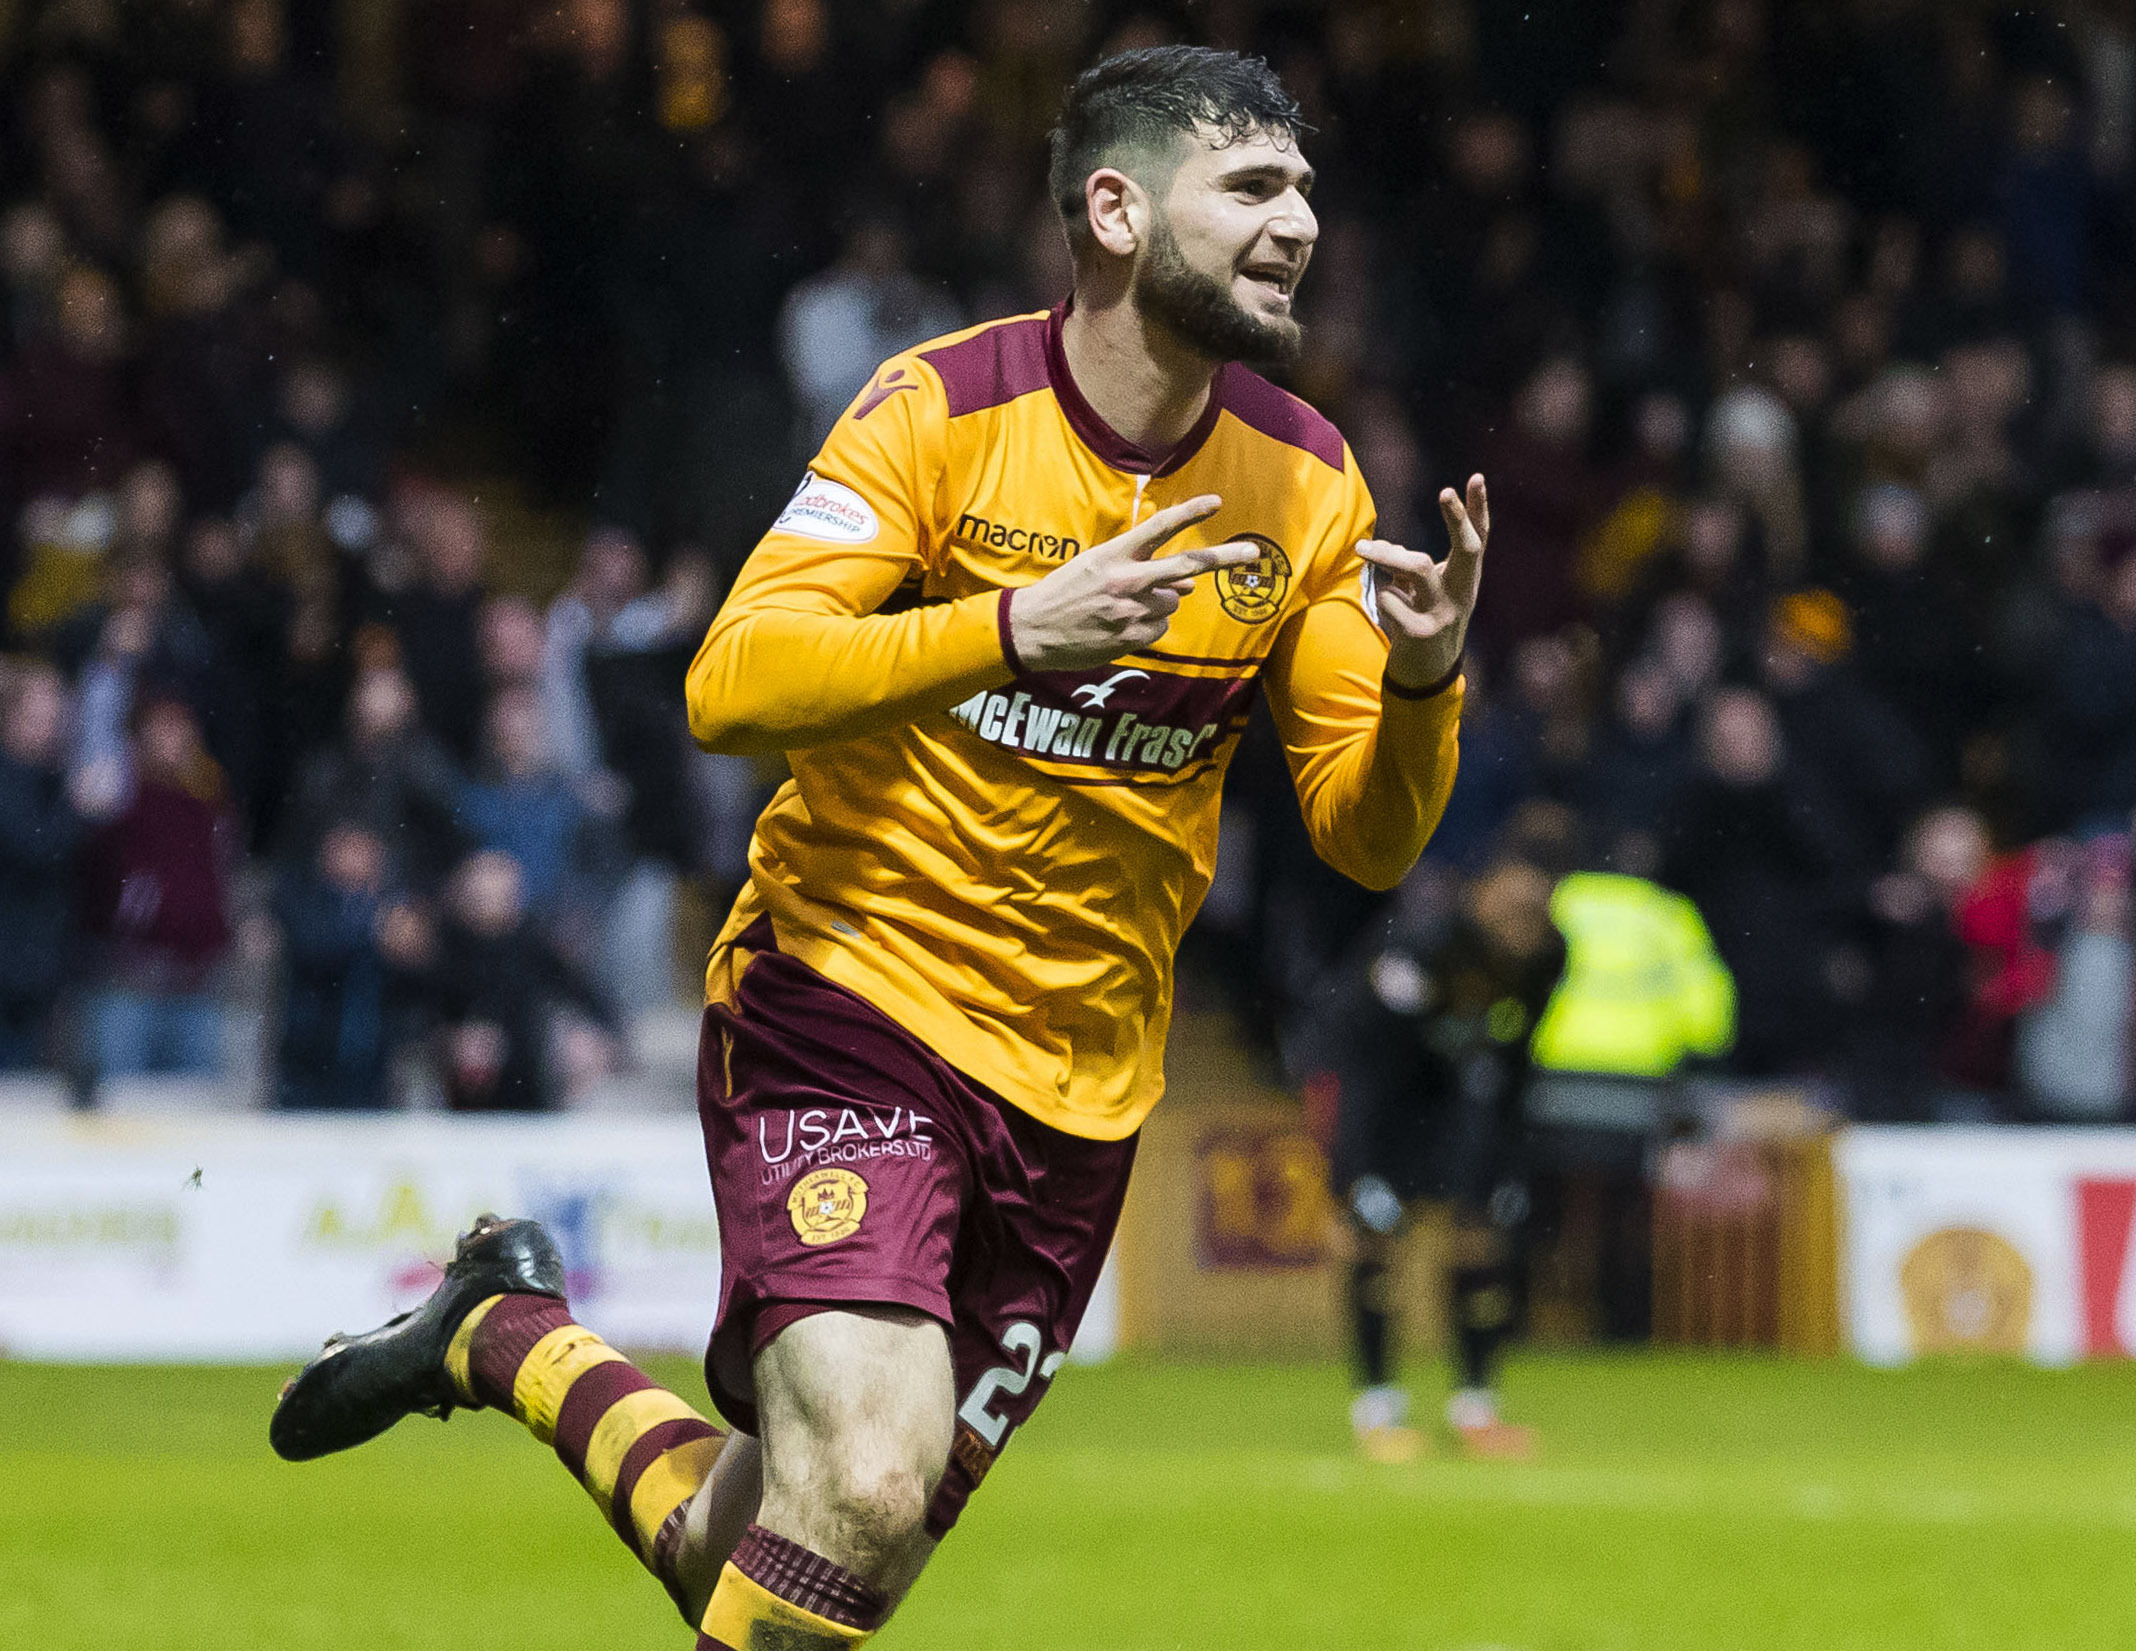 Nadir Ciftci went from the ridiculous to the sublime to earn Motherwell a point against Partick Thistle.